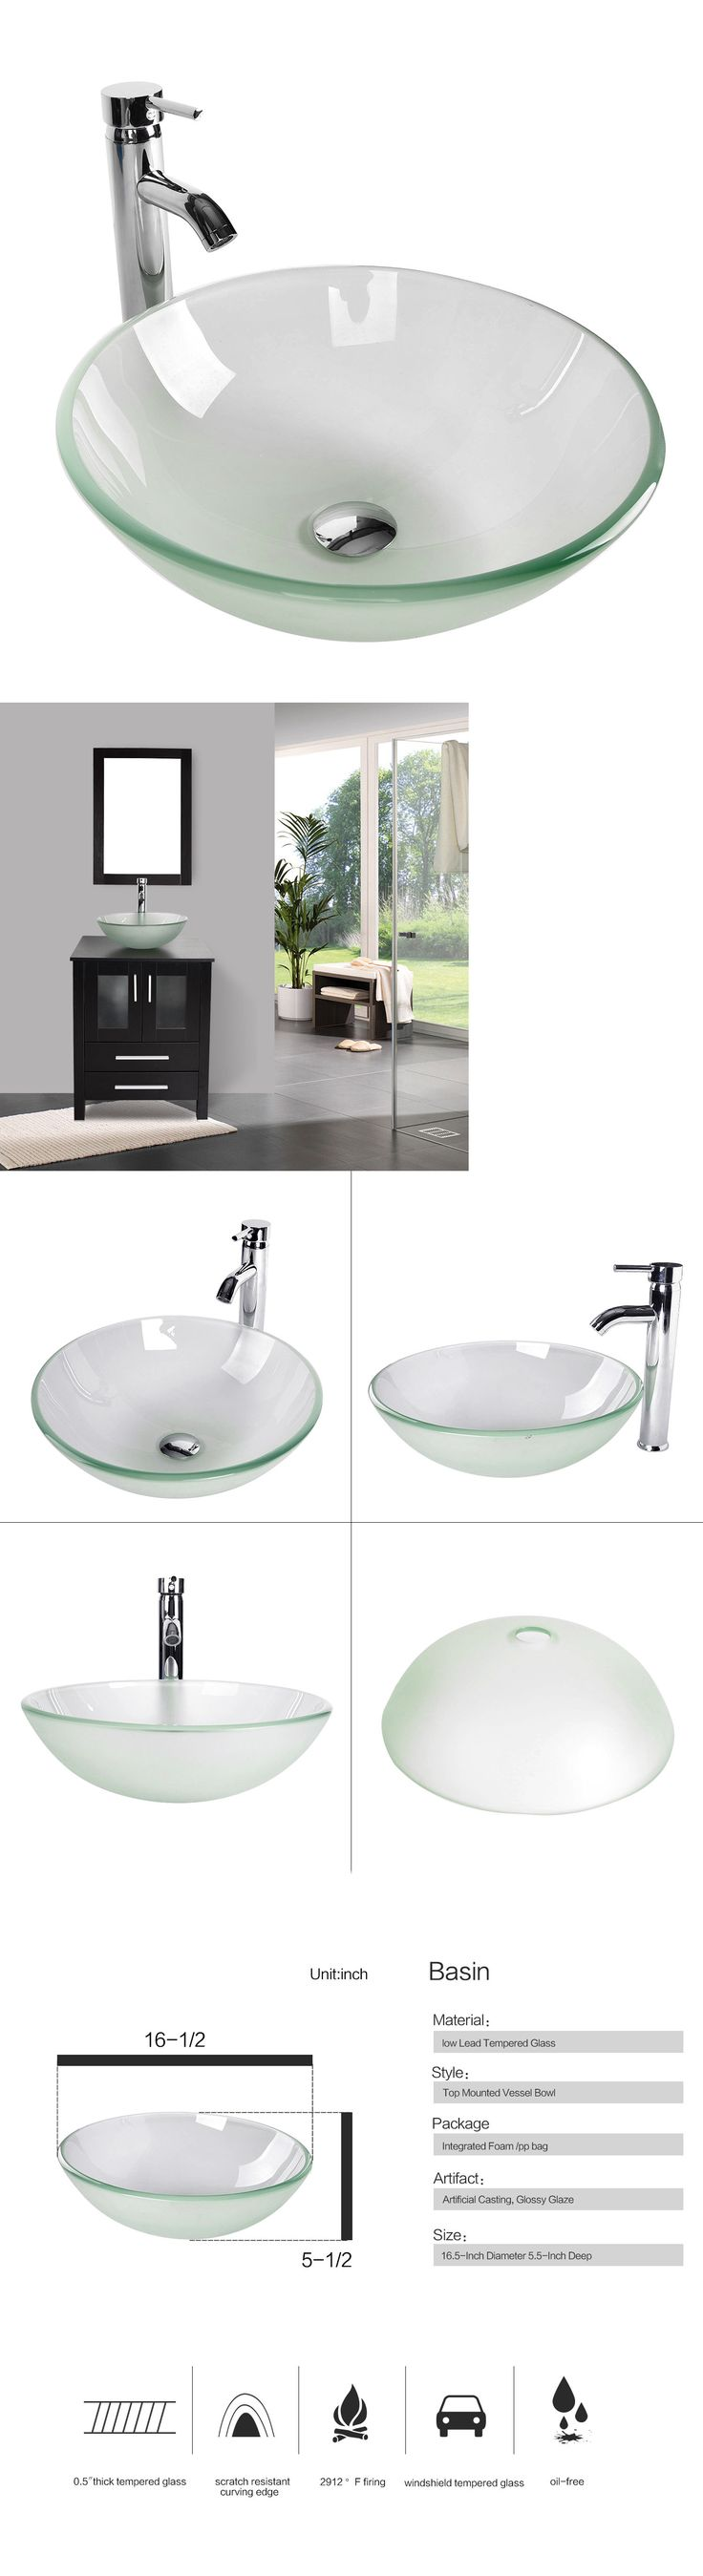 Room ider in the corner bathroom ideas opaque glass opaque glass - Sinks 71283 Bathroom Frosted Clear Glass Vessel Sink Bowl Chrome Faucet Pop Up Drain